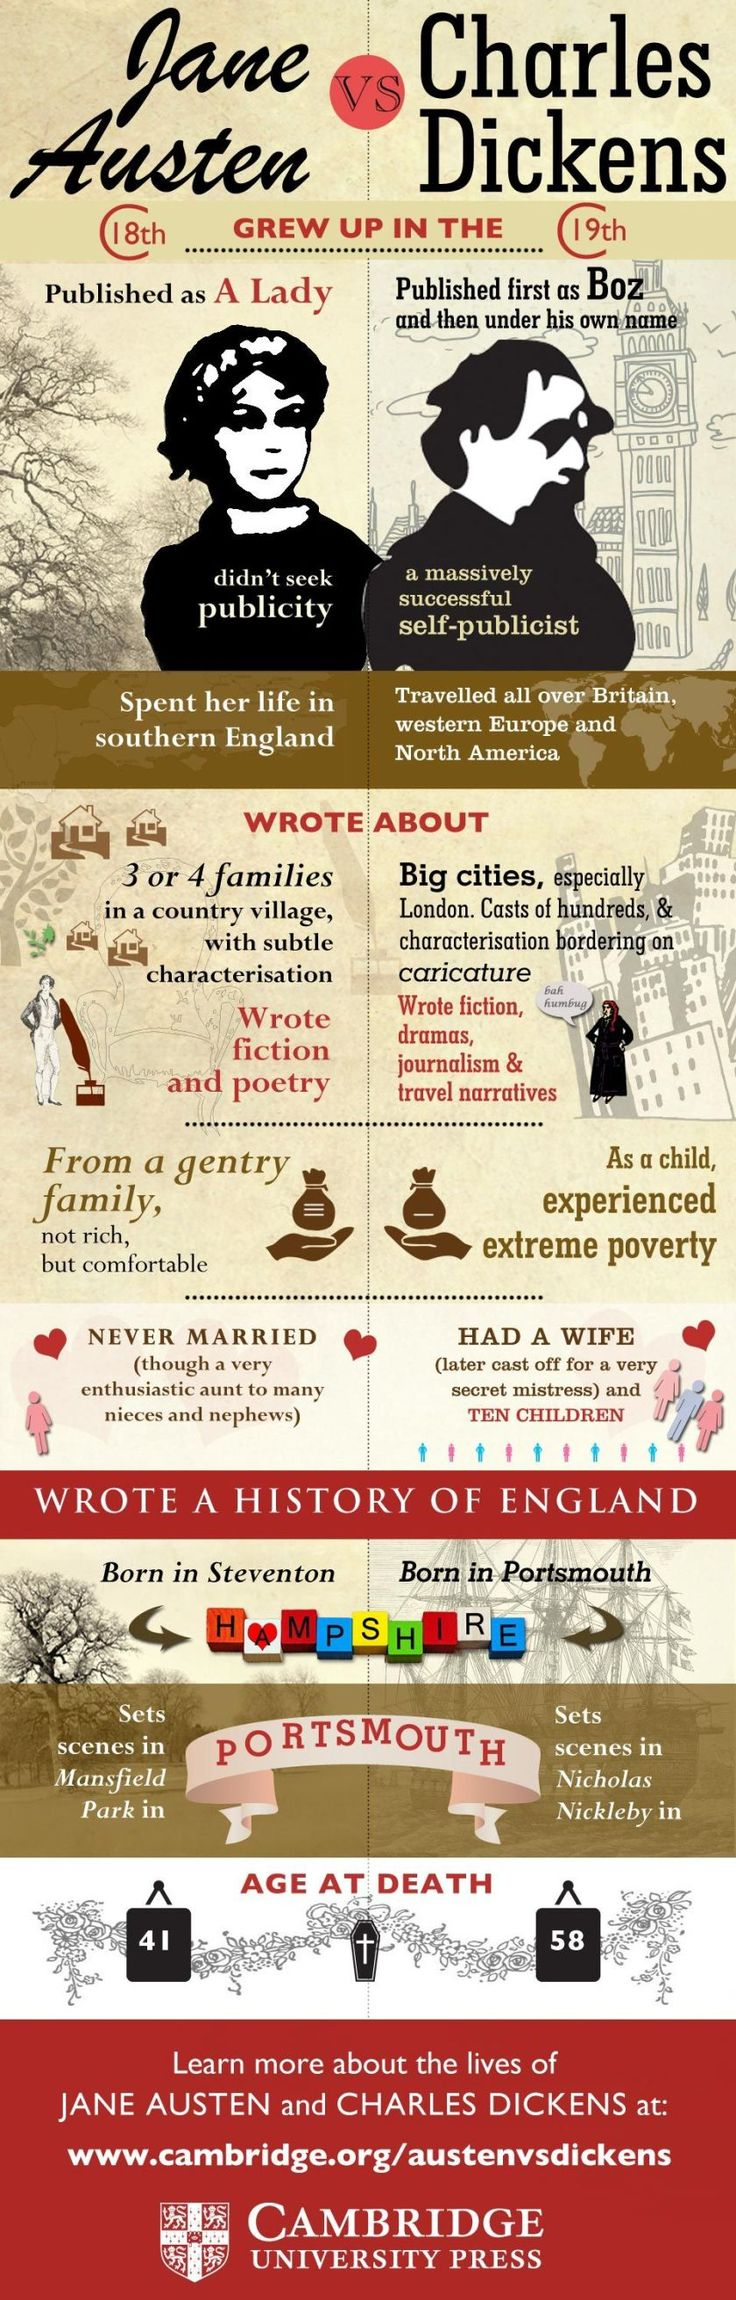 How does Jane Austen compare to Charles Dickens? #infographic Their private lives side by side